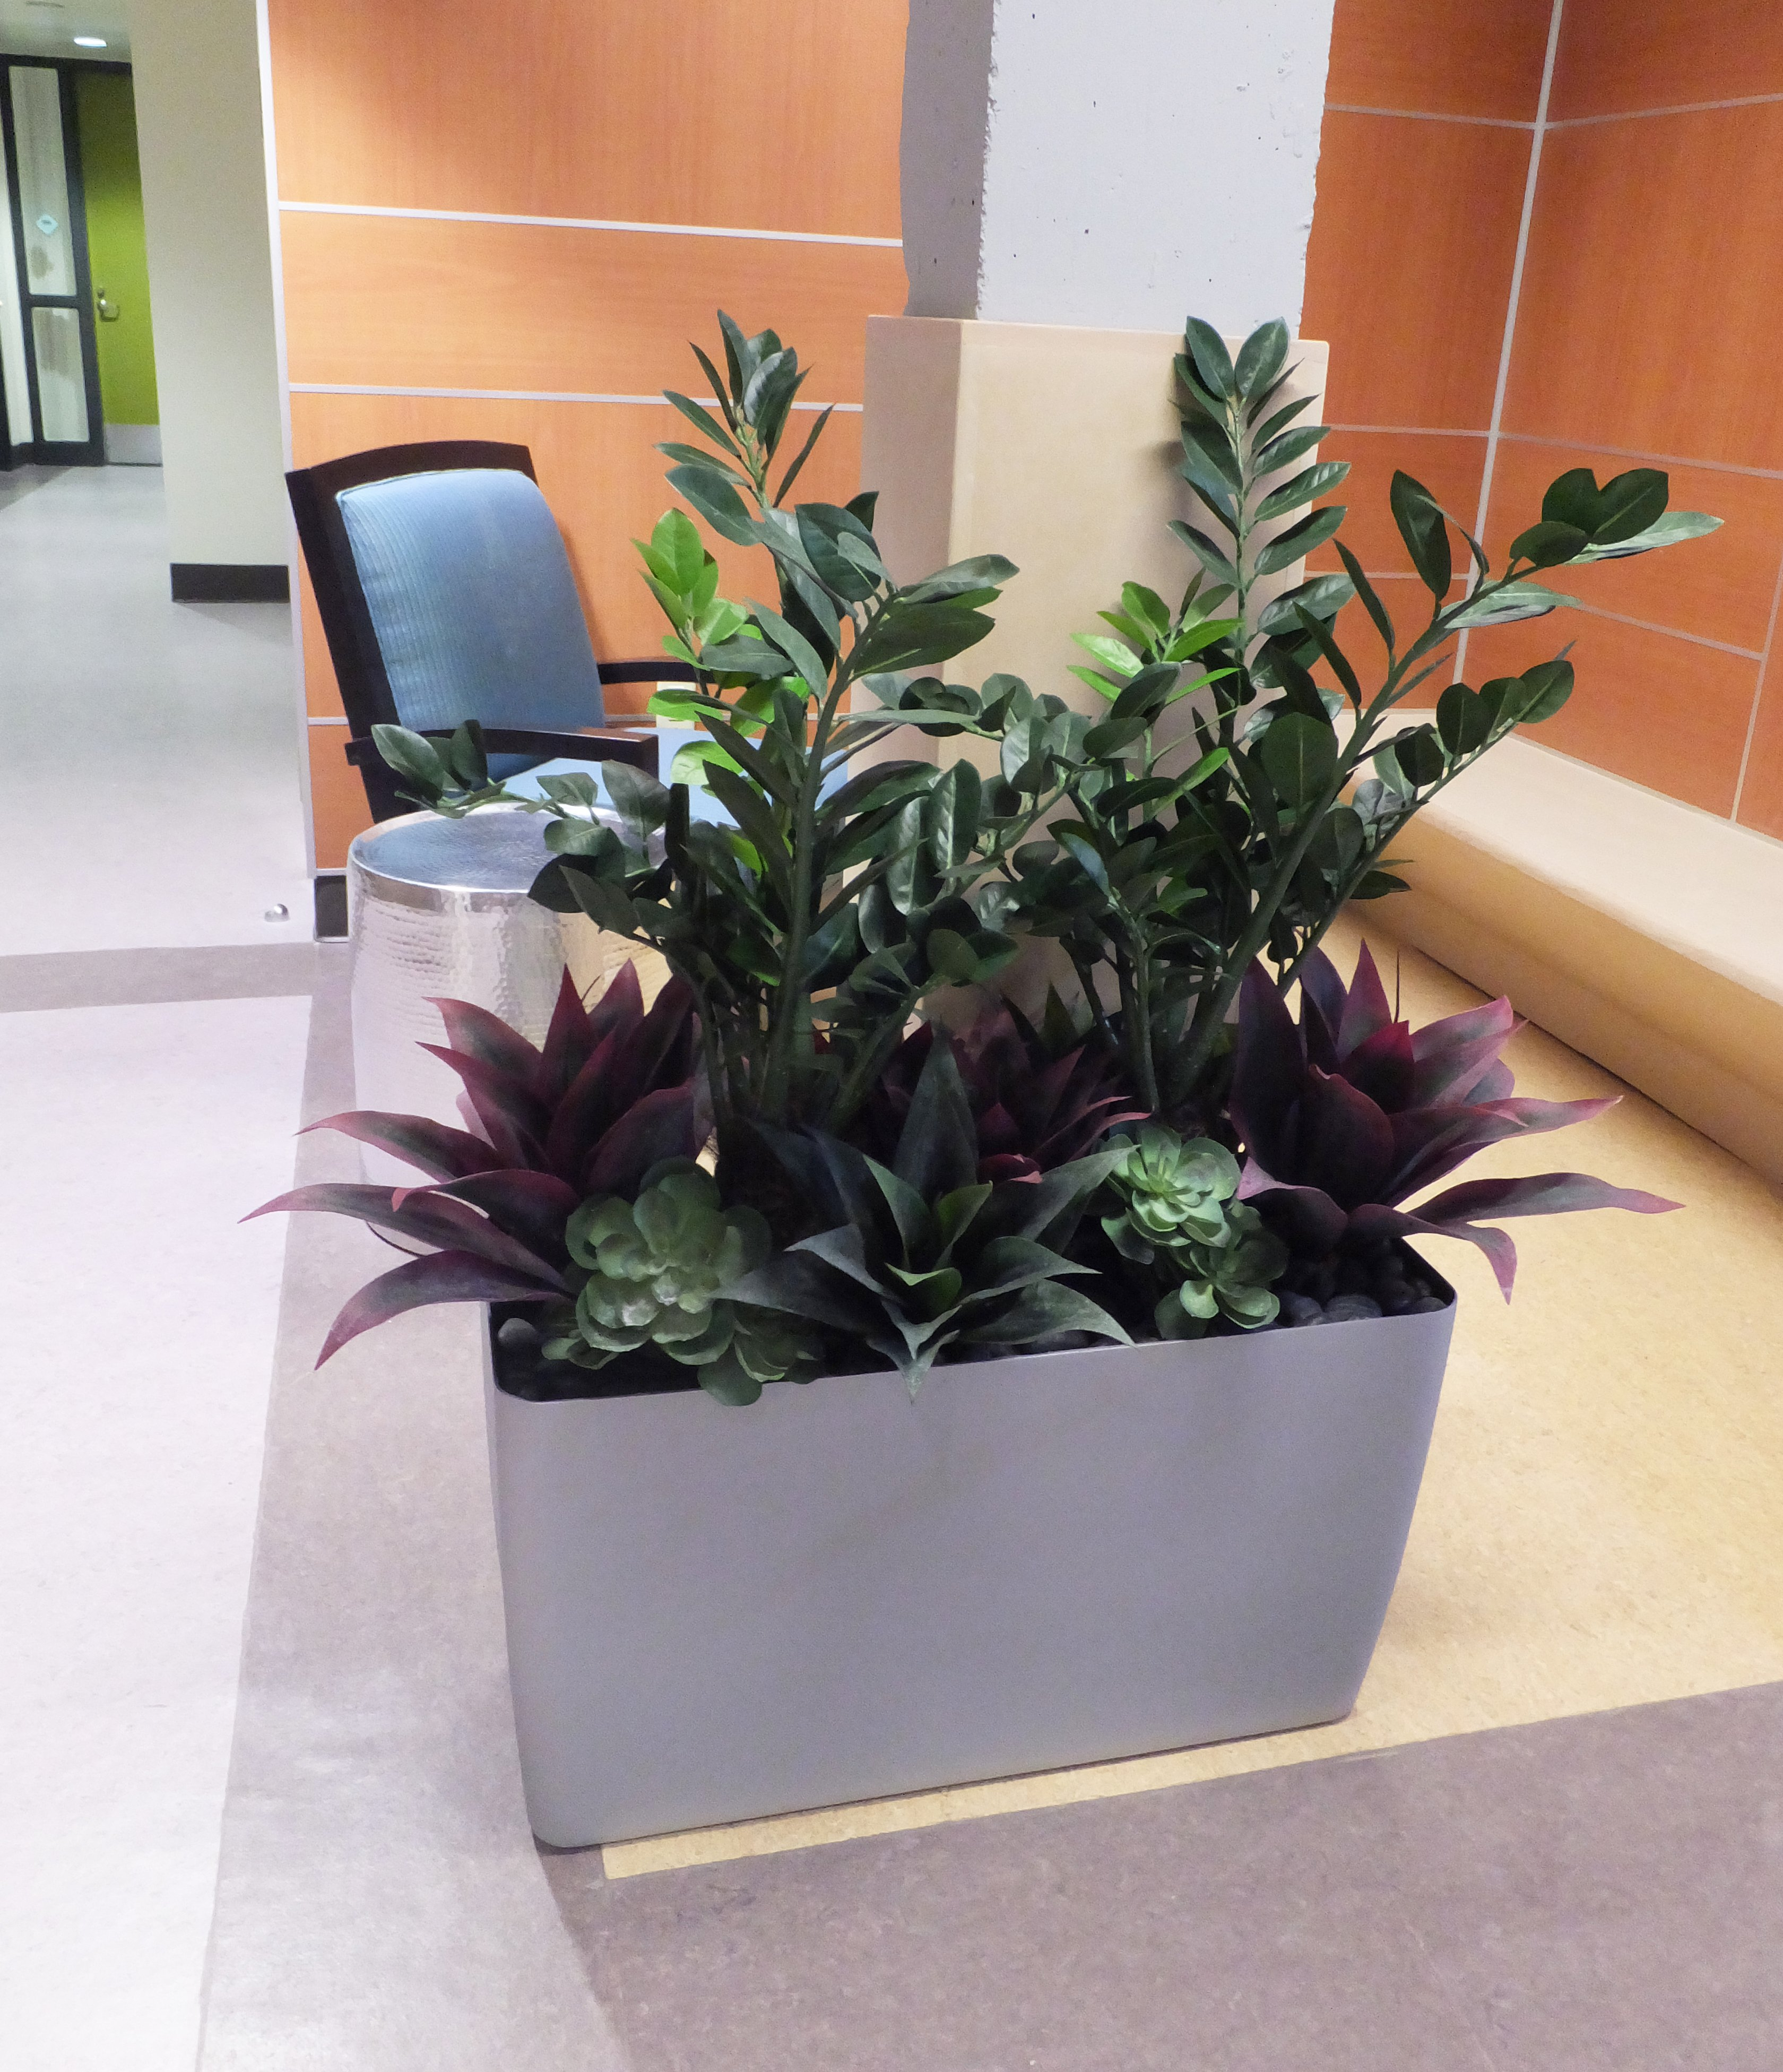 Inside of the VA Greater Los Angeles, Sepulveda Ambulatory Care Center, we mixed zamia, low agaves and escheverias to enhance the environment.